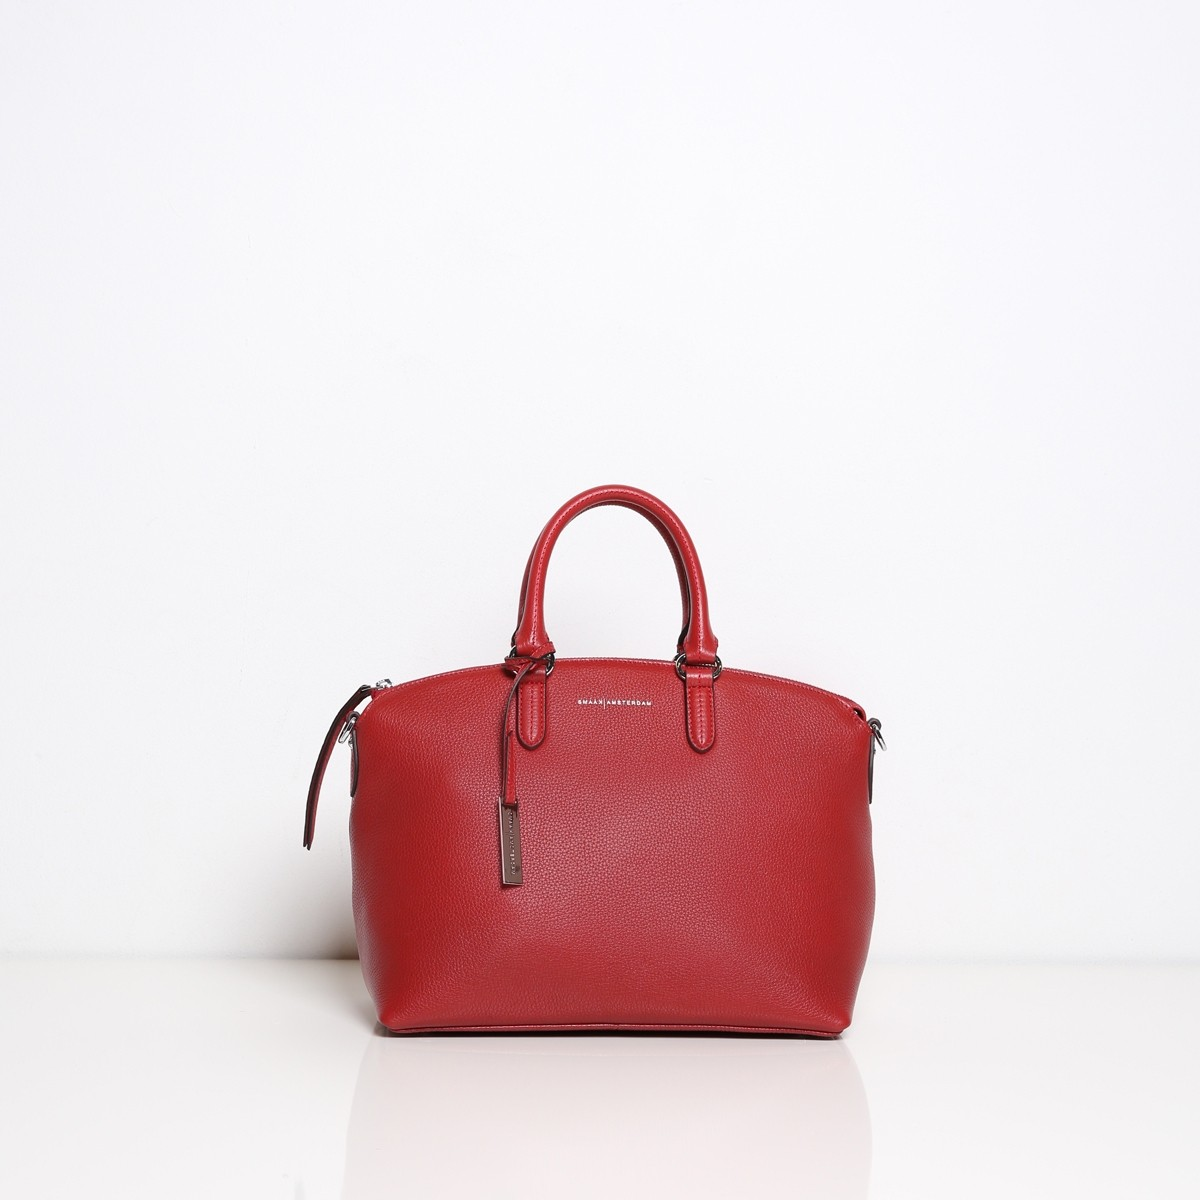 METTE RED